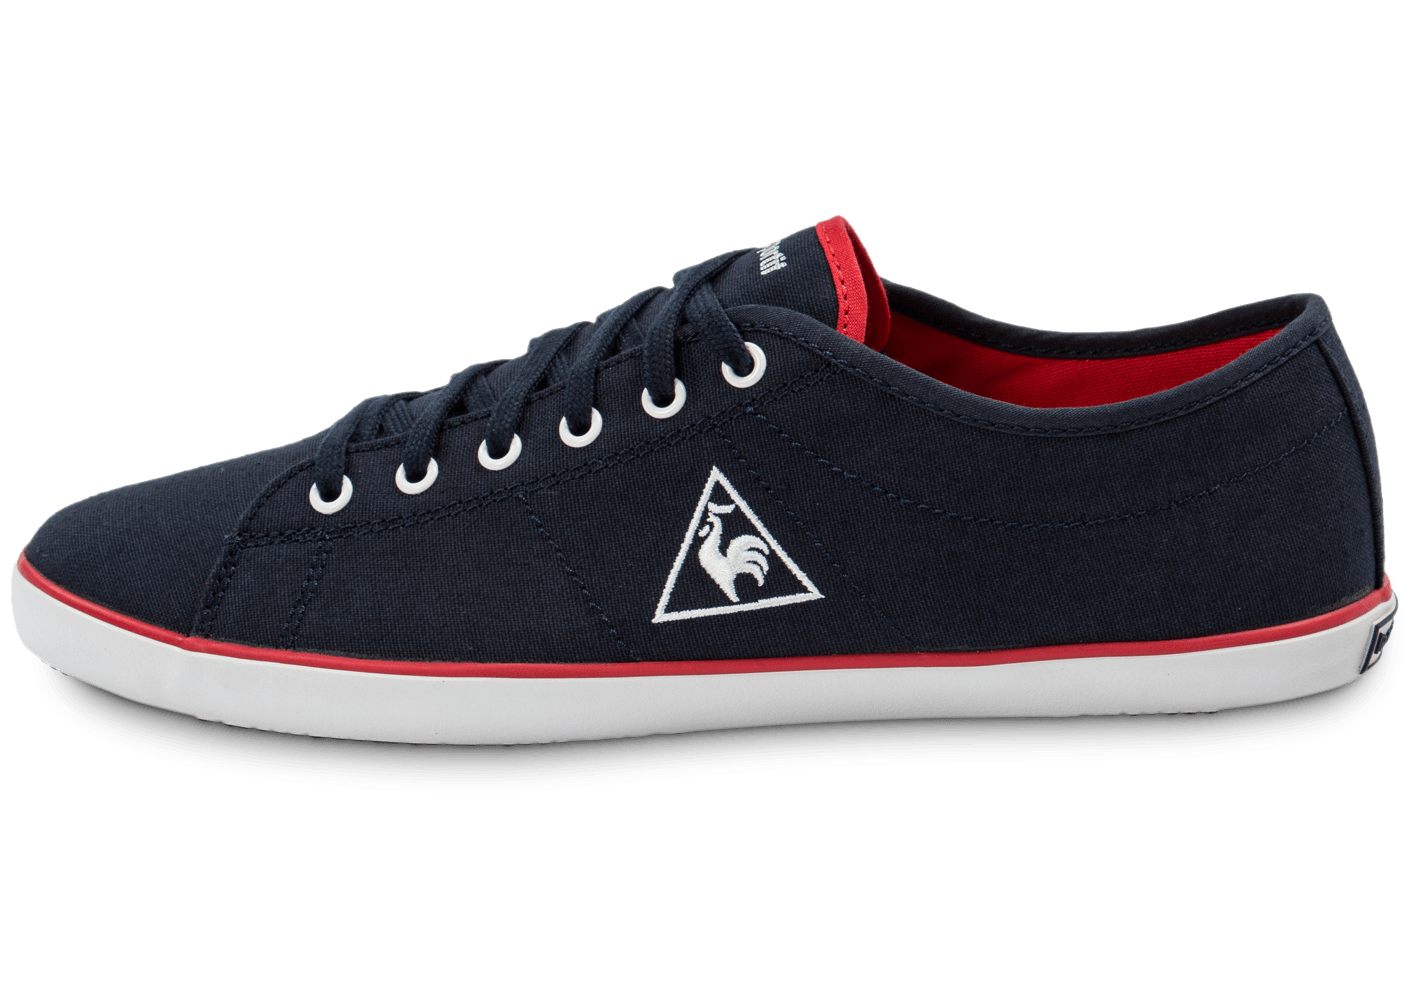 le coq sportif slimset toile bleu marine chaussures homme chausport. Black Bedroom Furniture Sets. Home Design Ideas